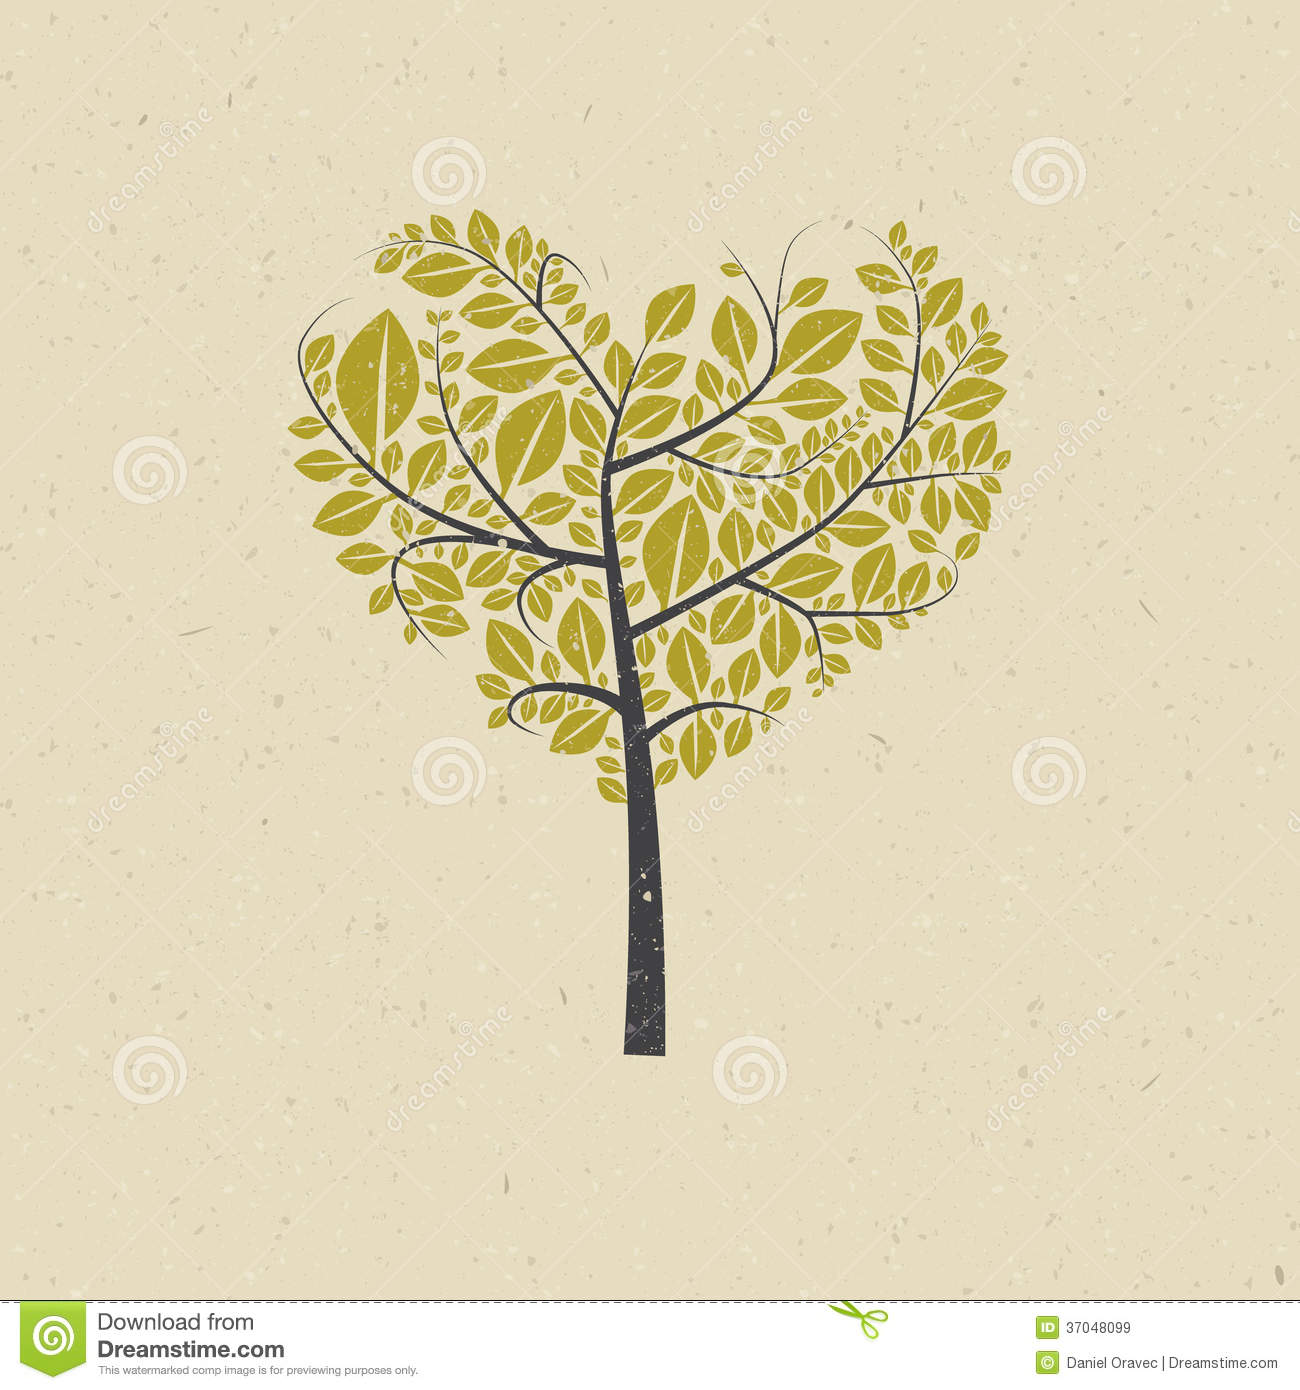 Heart Shaped Tree on Recycled Paper